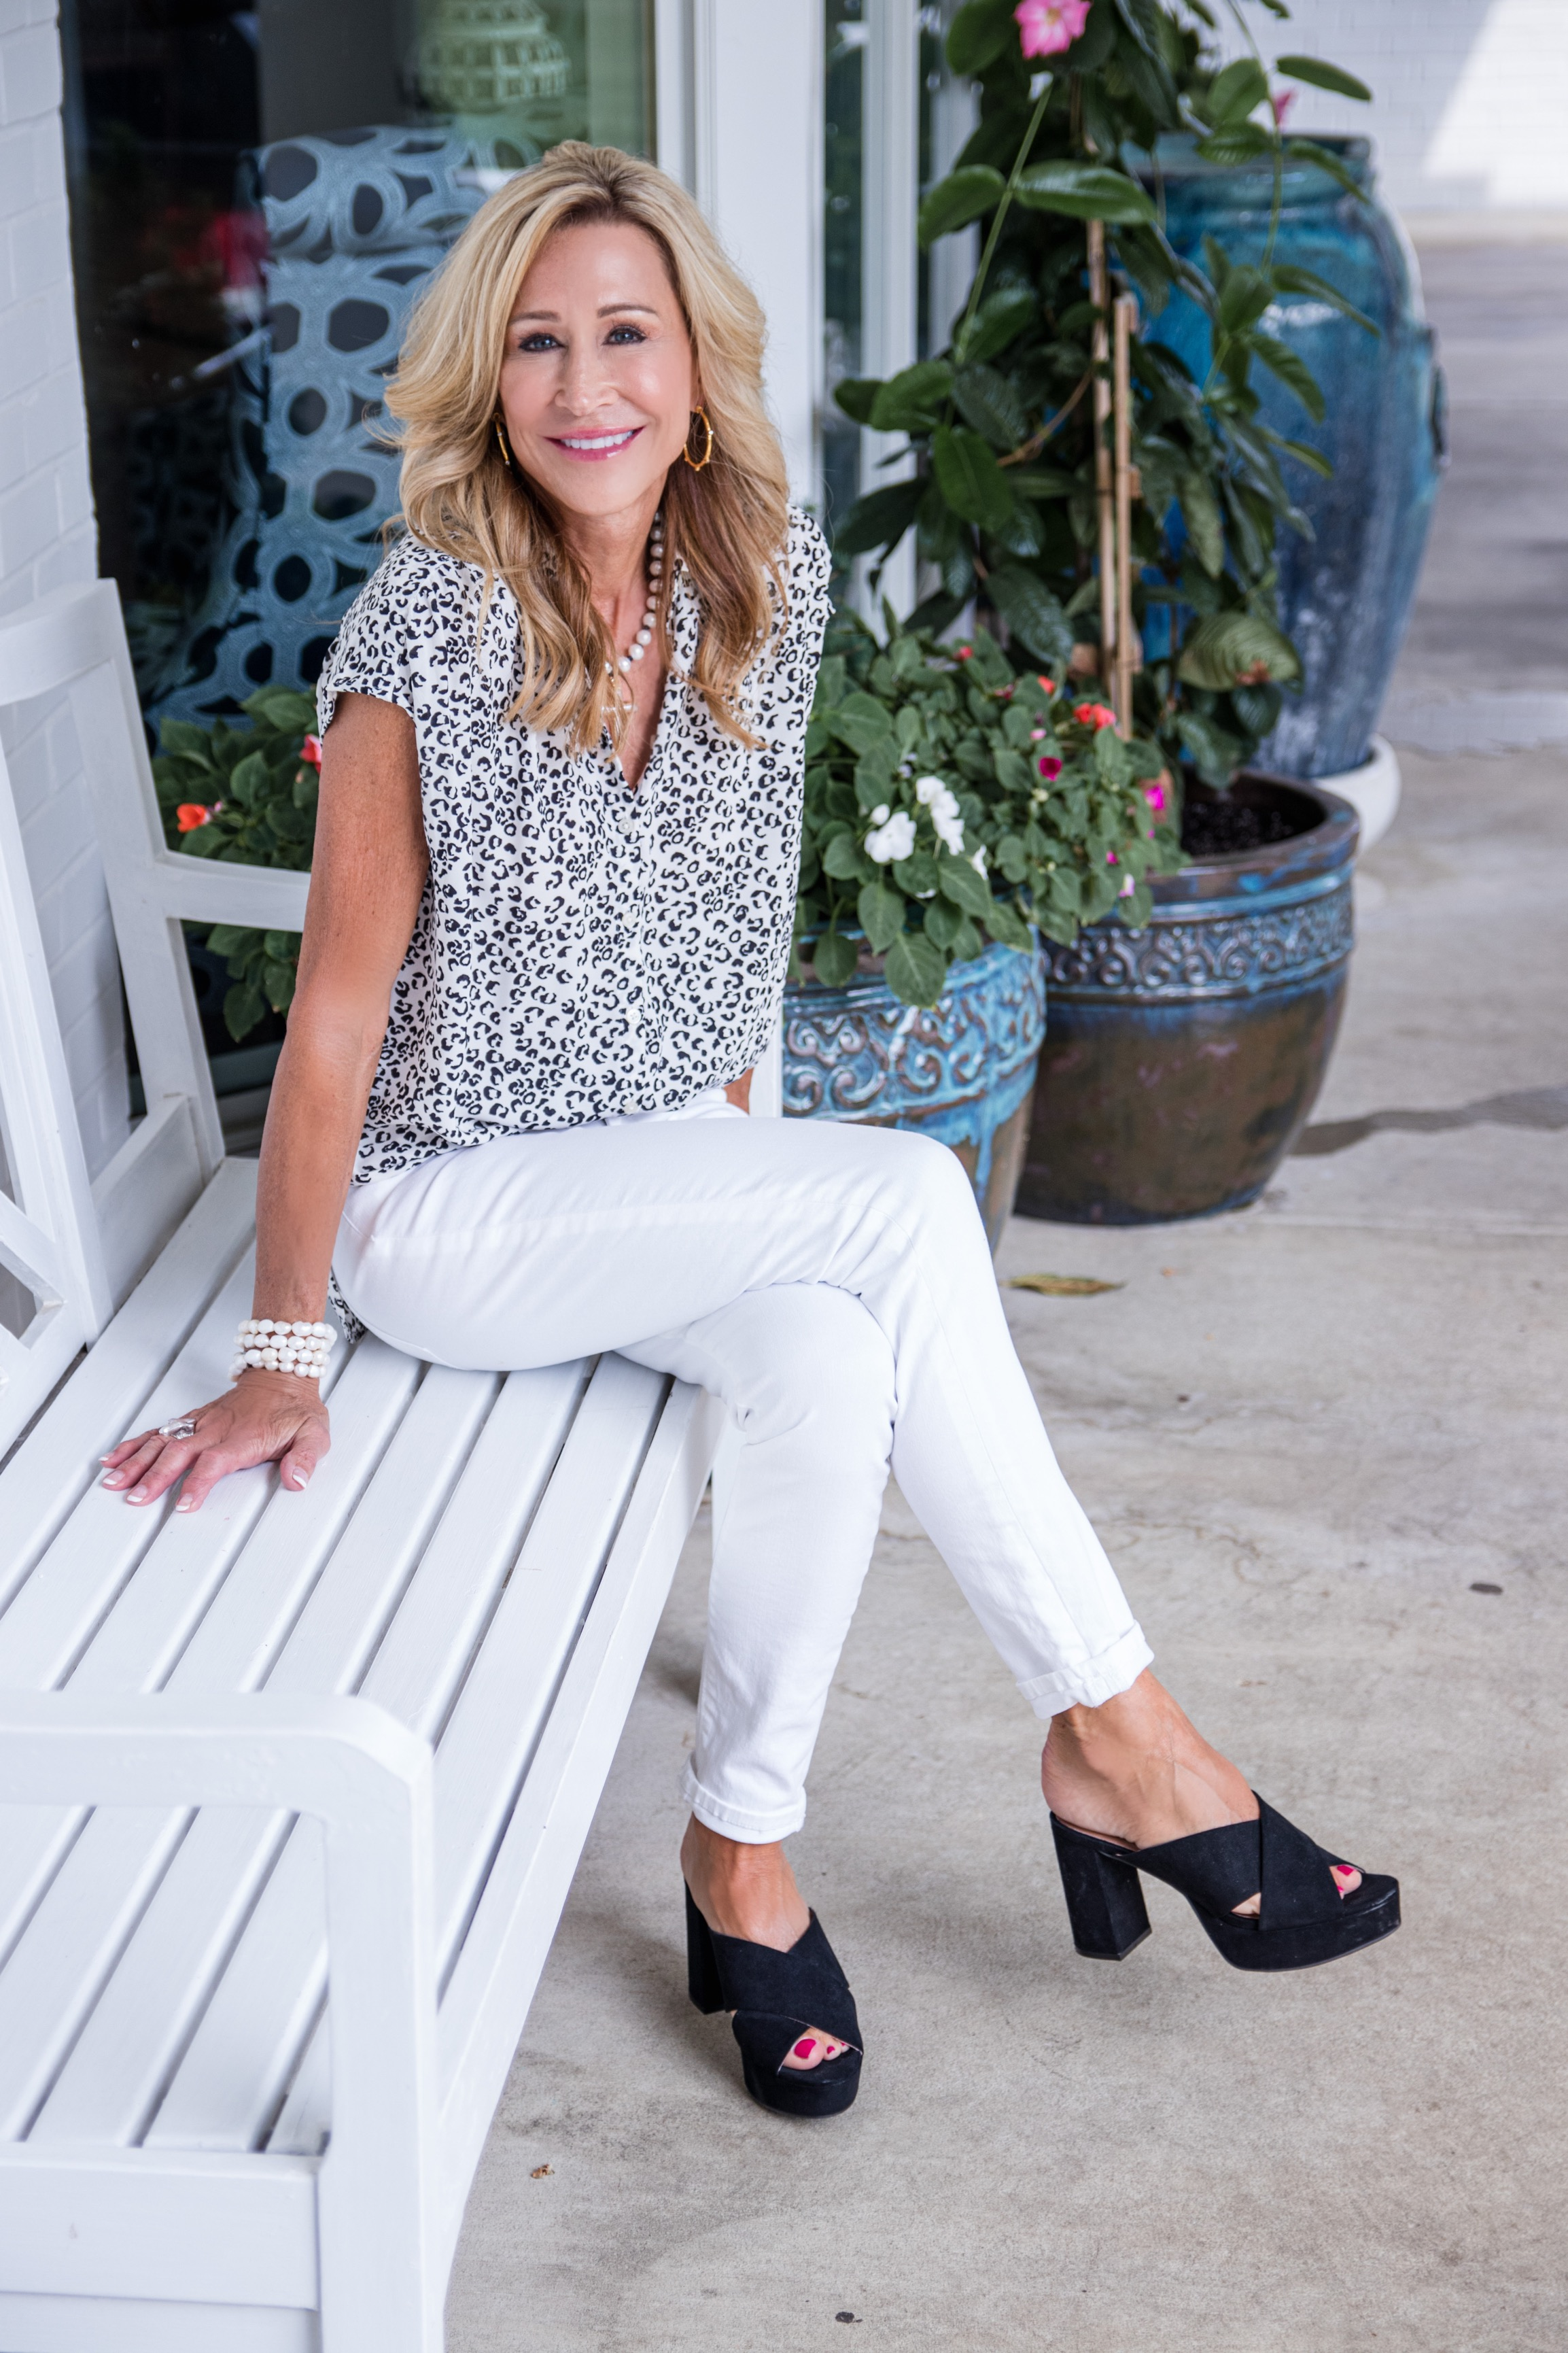 Chinese Laundry Shoes - Transitional fall outfit - Crazy Blonde Life